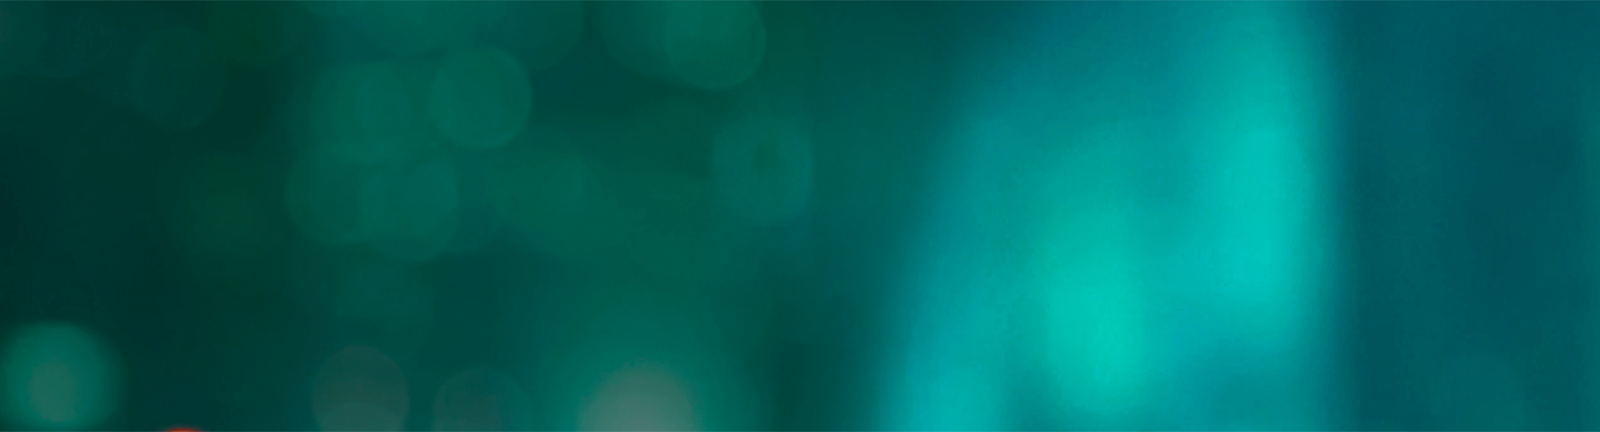 banner-princing-pages-bg-1.png